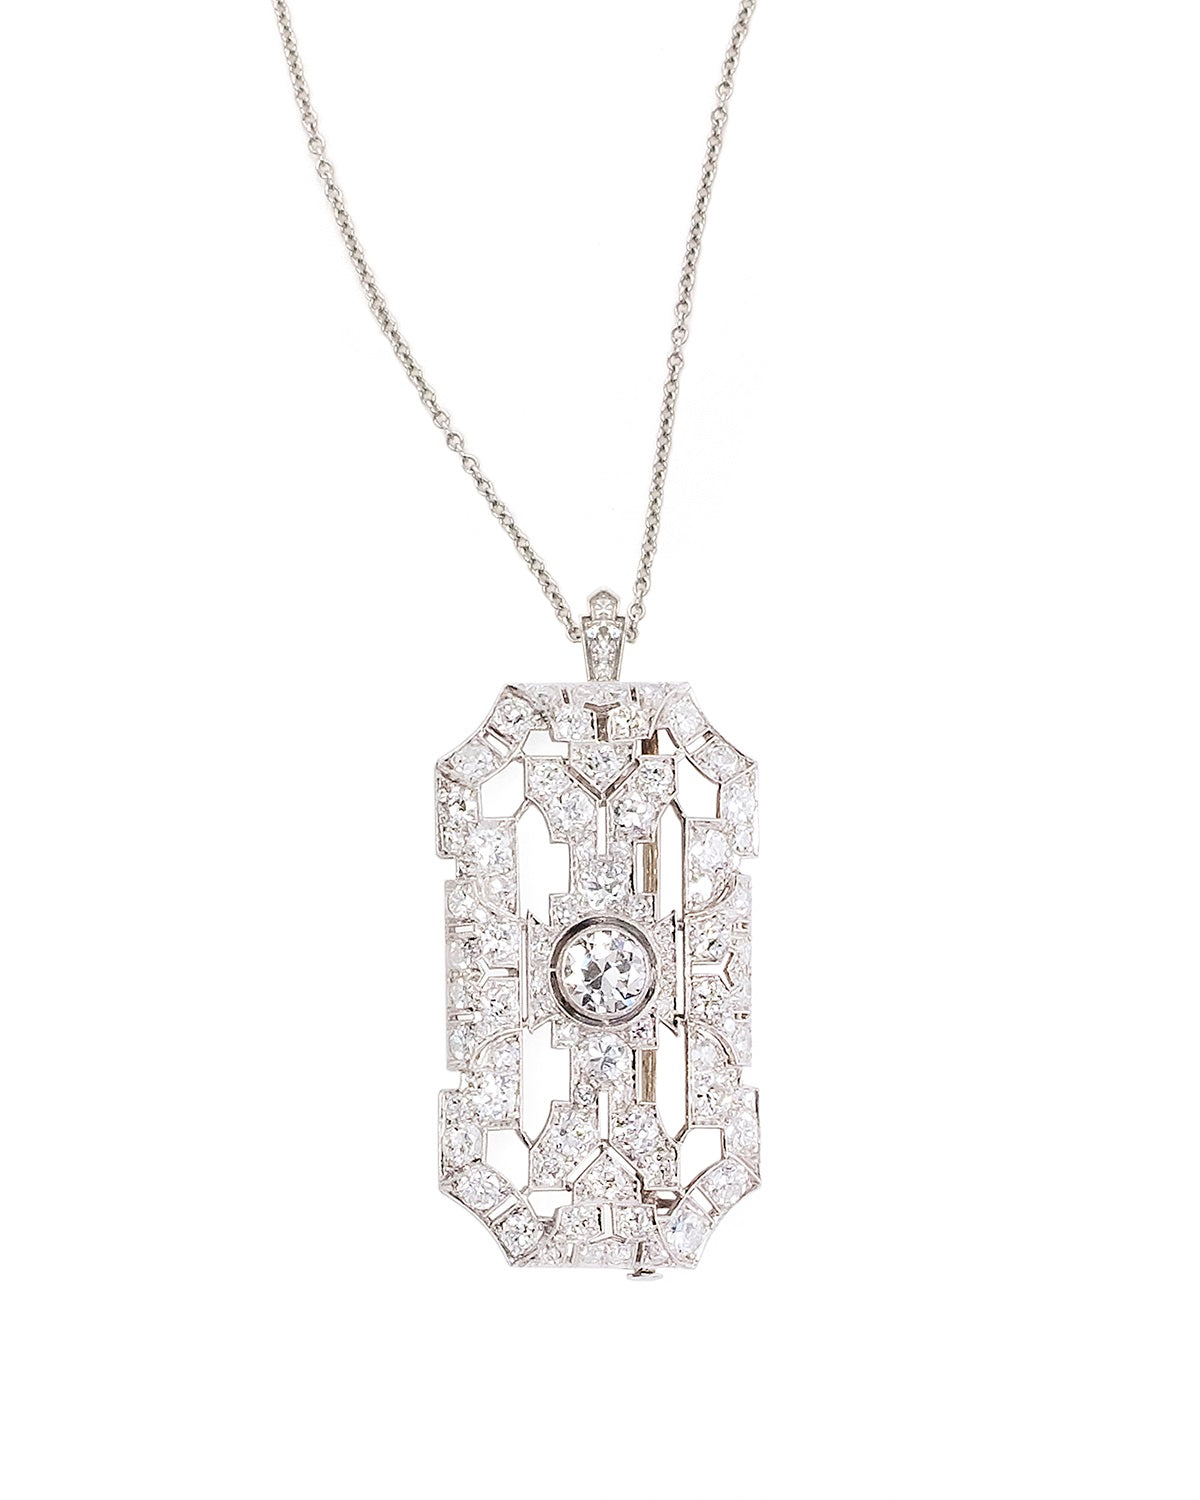 Art Deco Platinum and Diamond Brooch/Pendant